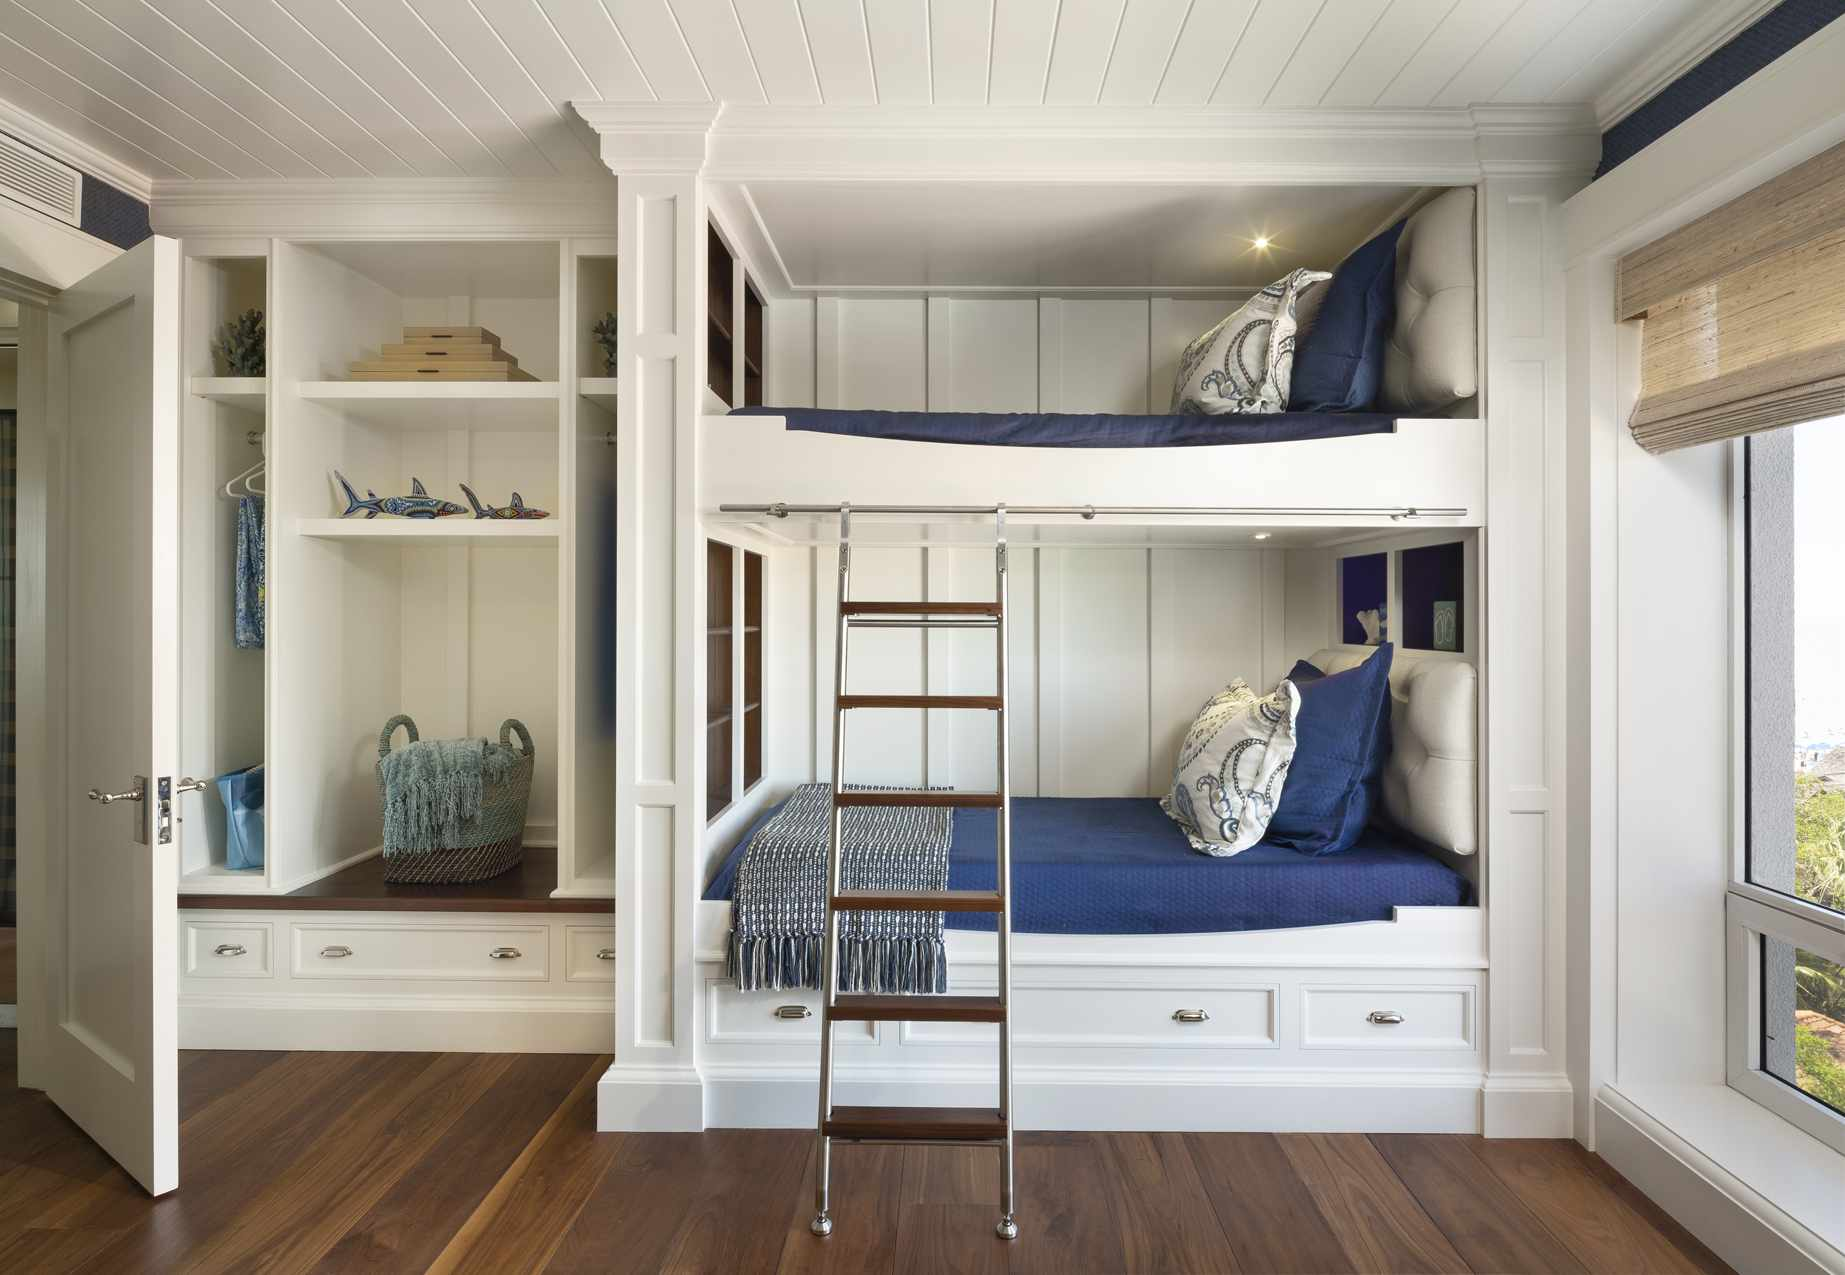 Under the bed storage solutions